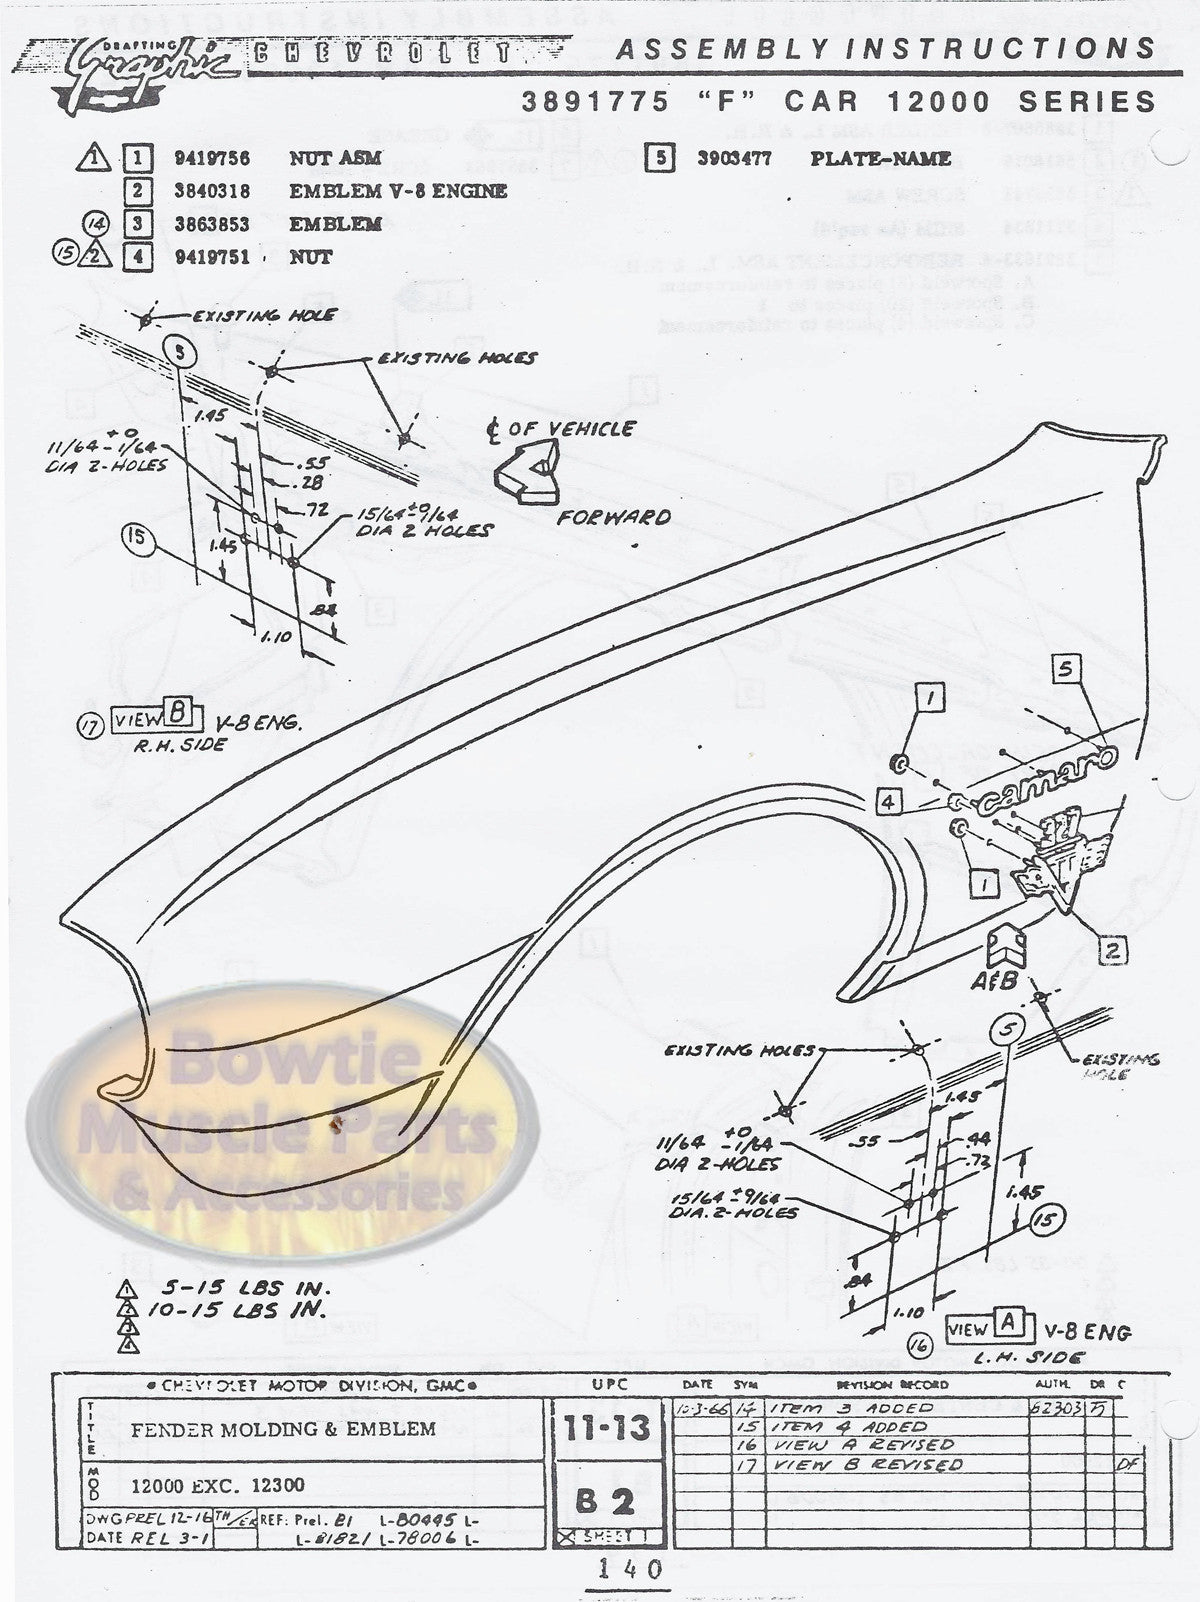 2003 Monte Carlo Ss 3 8 Belt Diagram Schematic Diagrams 2000 Wiring 72 Engine Example Electrical U2022 Fuel Pump Relay